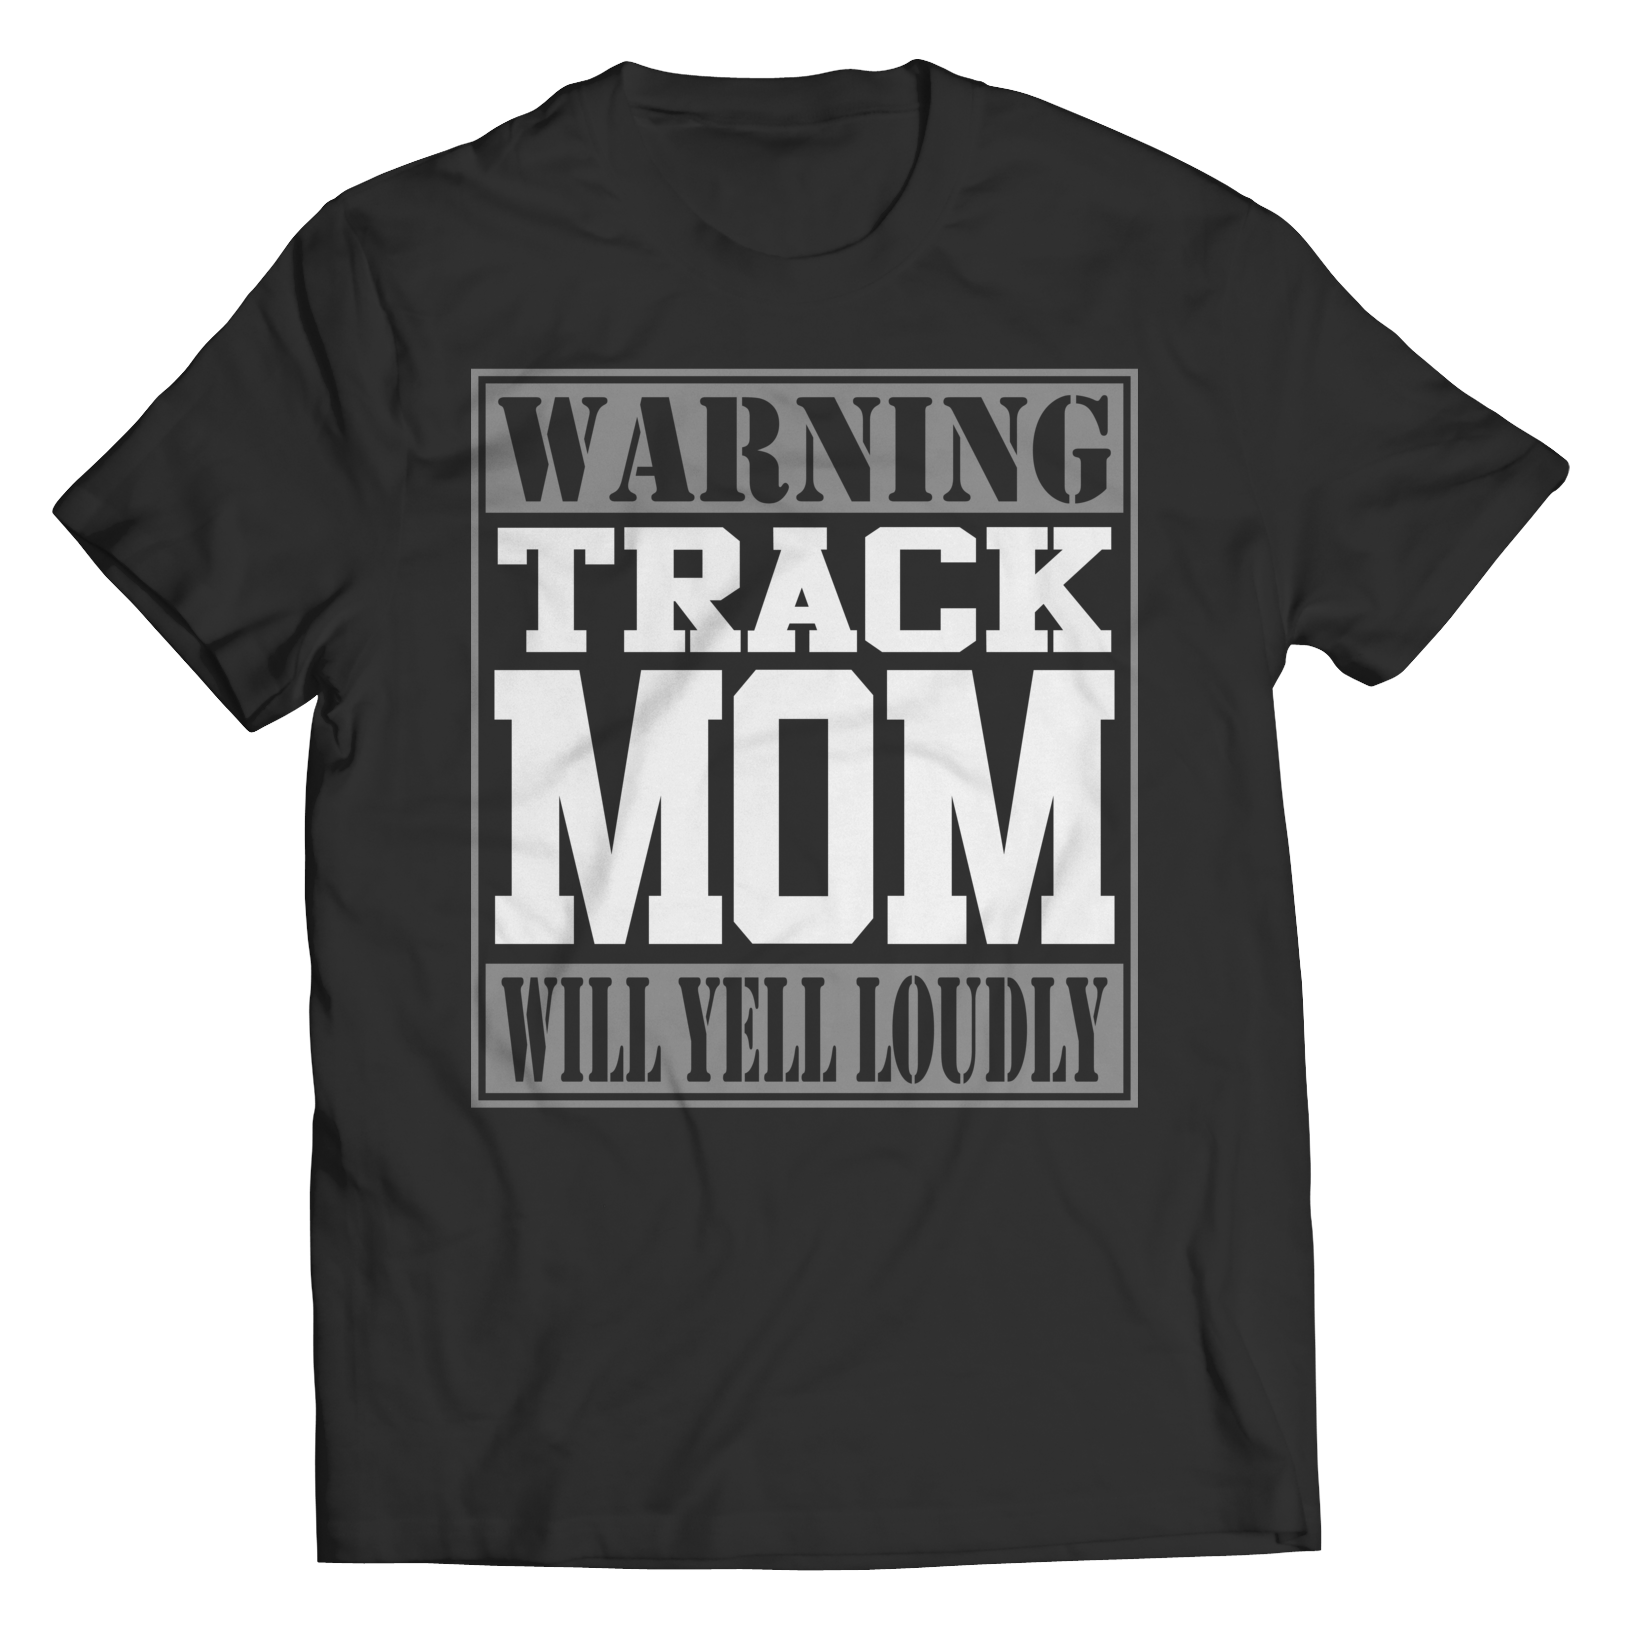 Limited Edition - Warning Track Mom will Yell Loudly Tee Shirt, Long Sleeve Shirt, Ladies Classic Tee Shirt, Hoodie